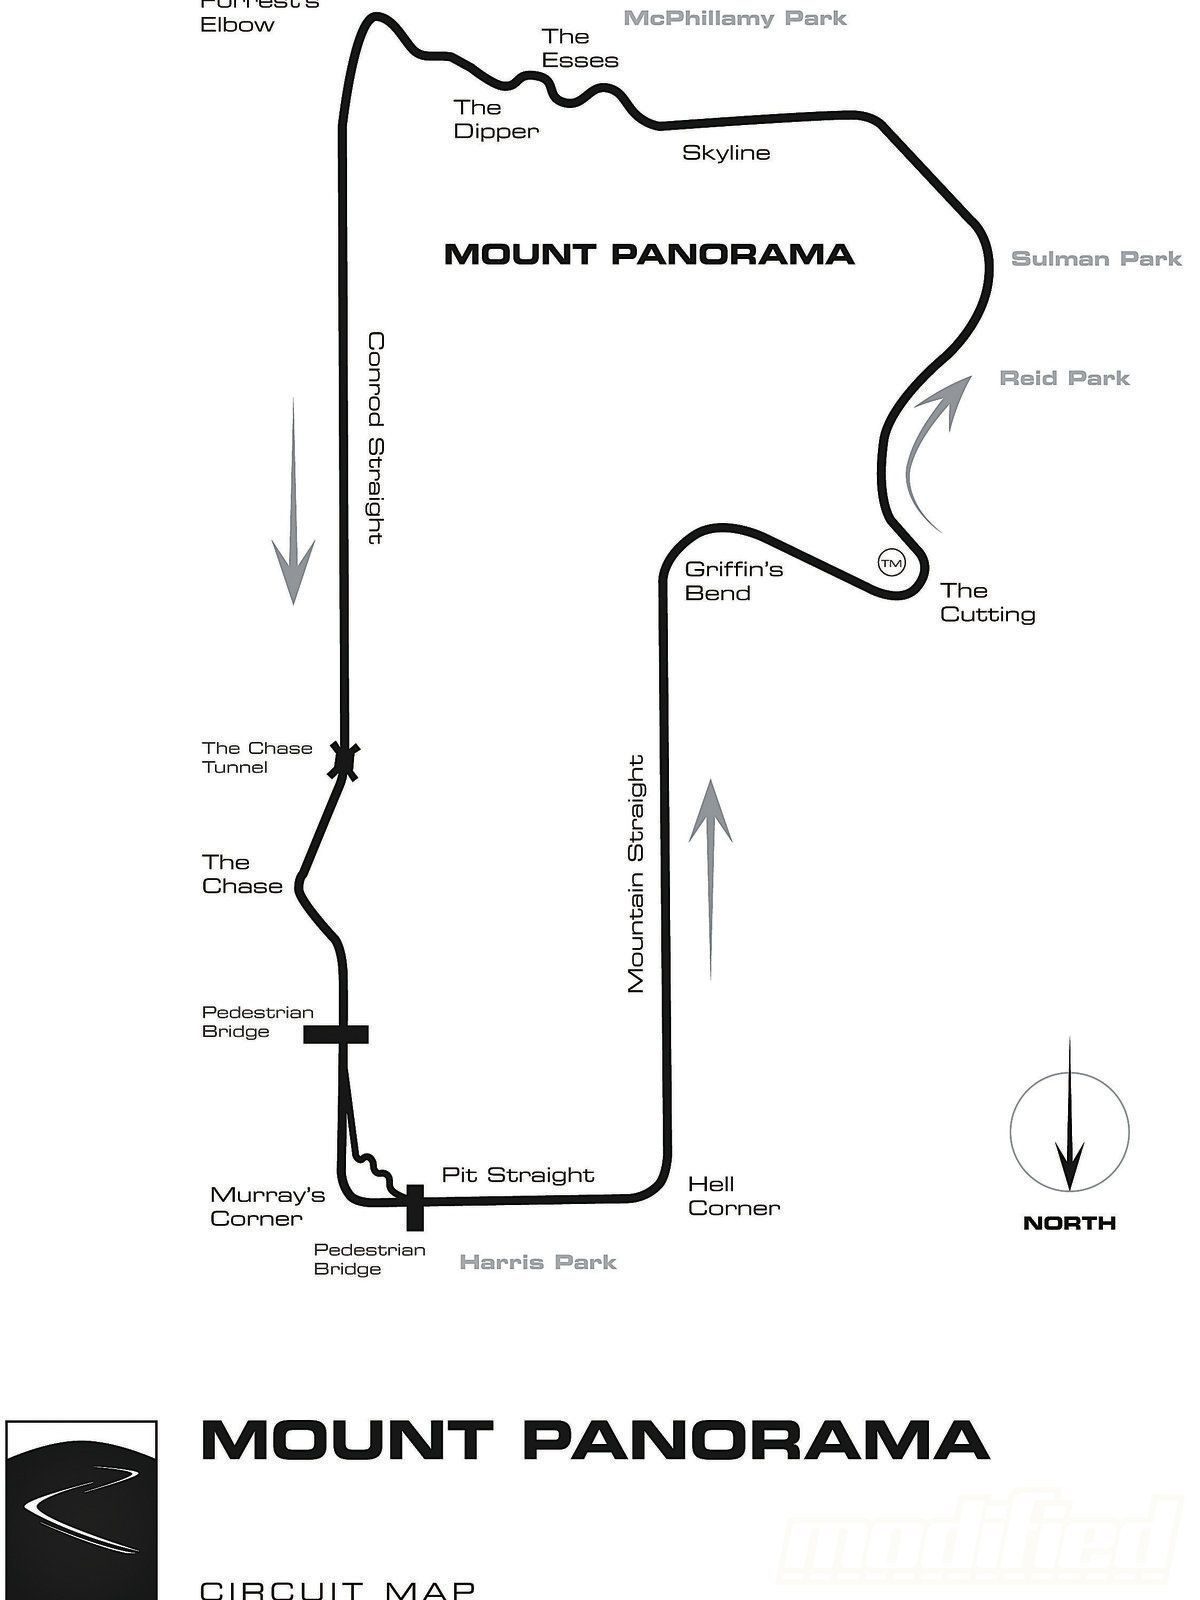 Mt Panorama (Bathurst). A great circuit that the map doesn